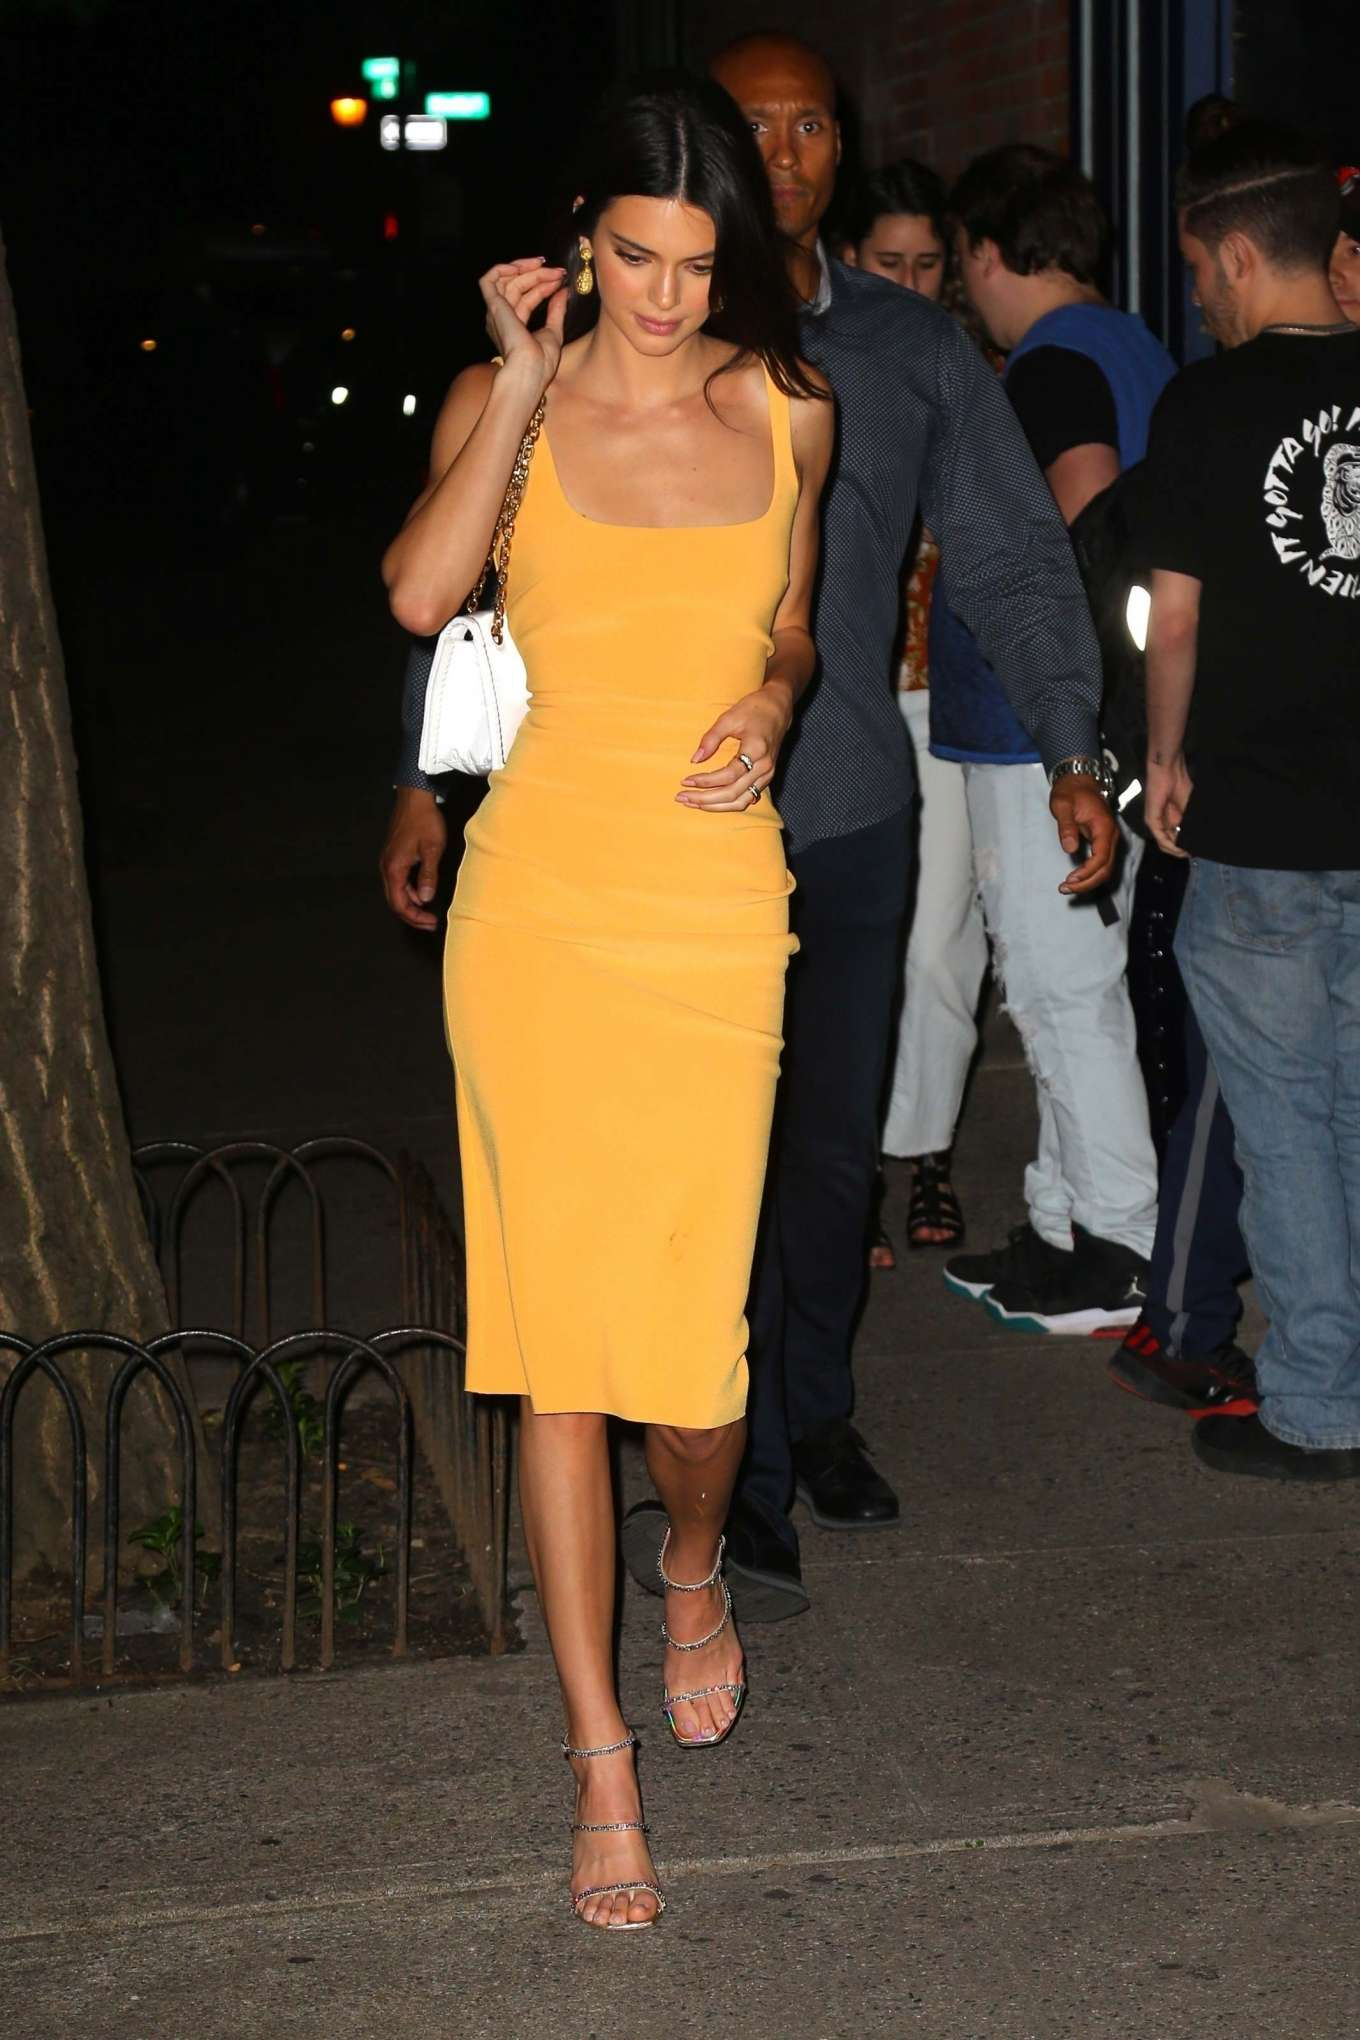 Kendall Jenner rocking a Figure hugging Light yellow midi dress with a scoop neck and straps